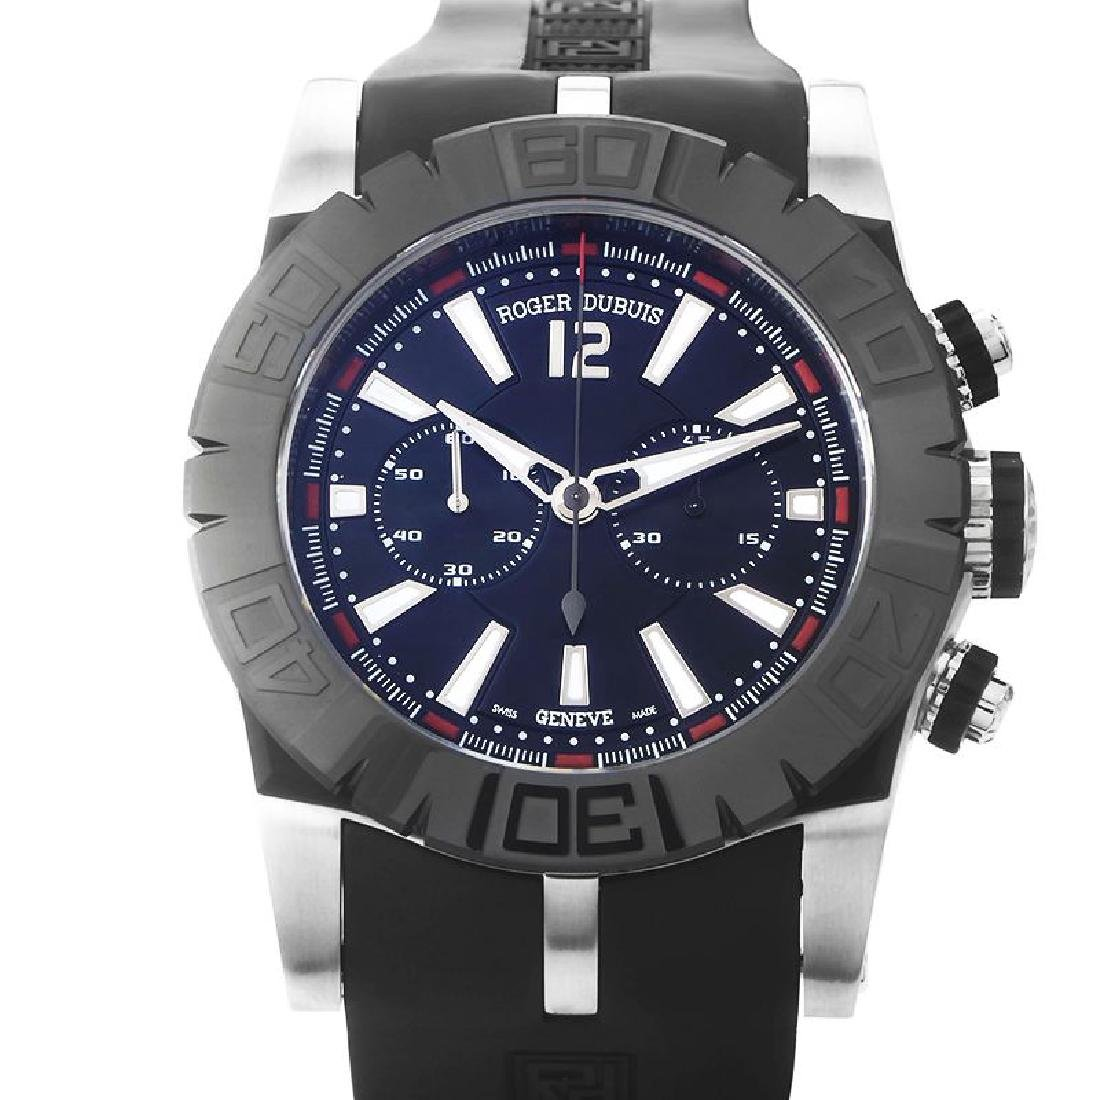 Roger Dubuis Easy Diver Watch Roger Dubuis Easy Diver